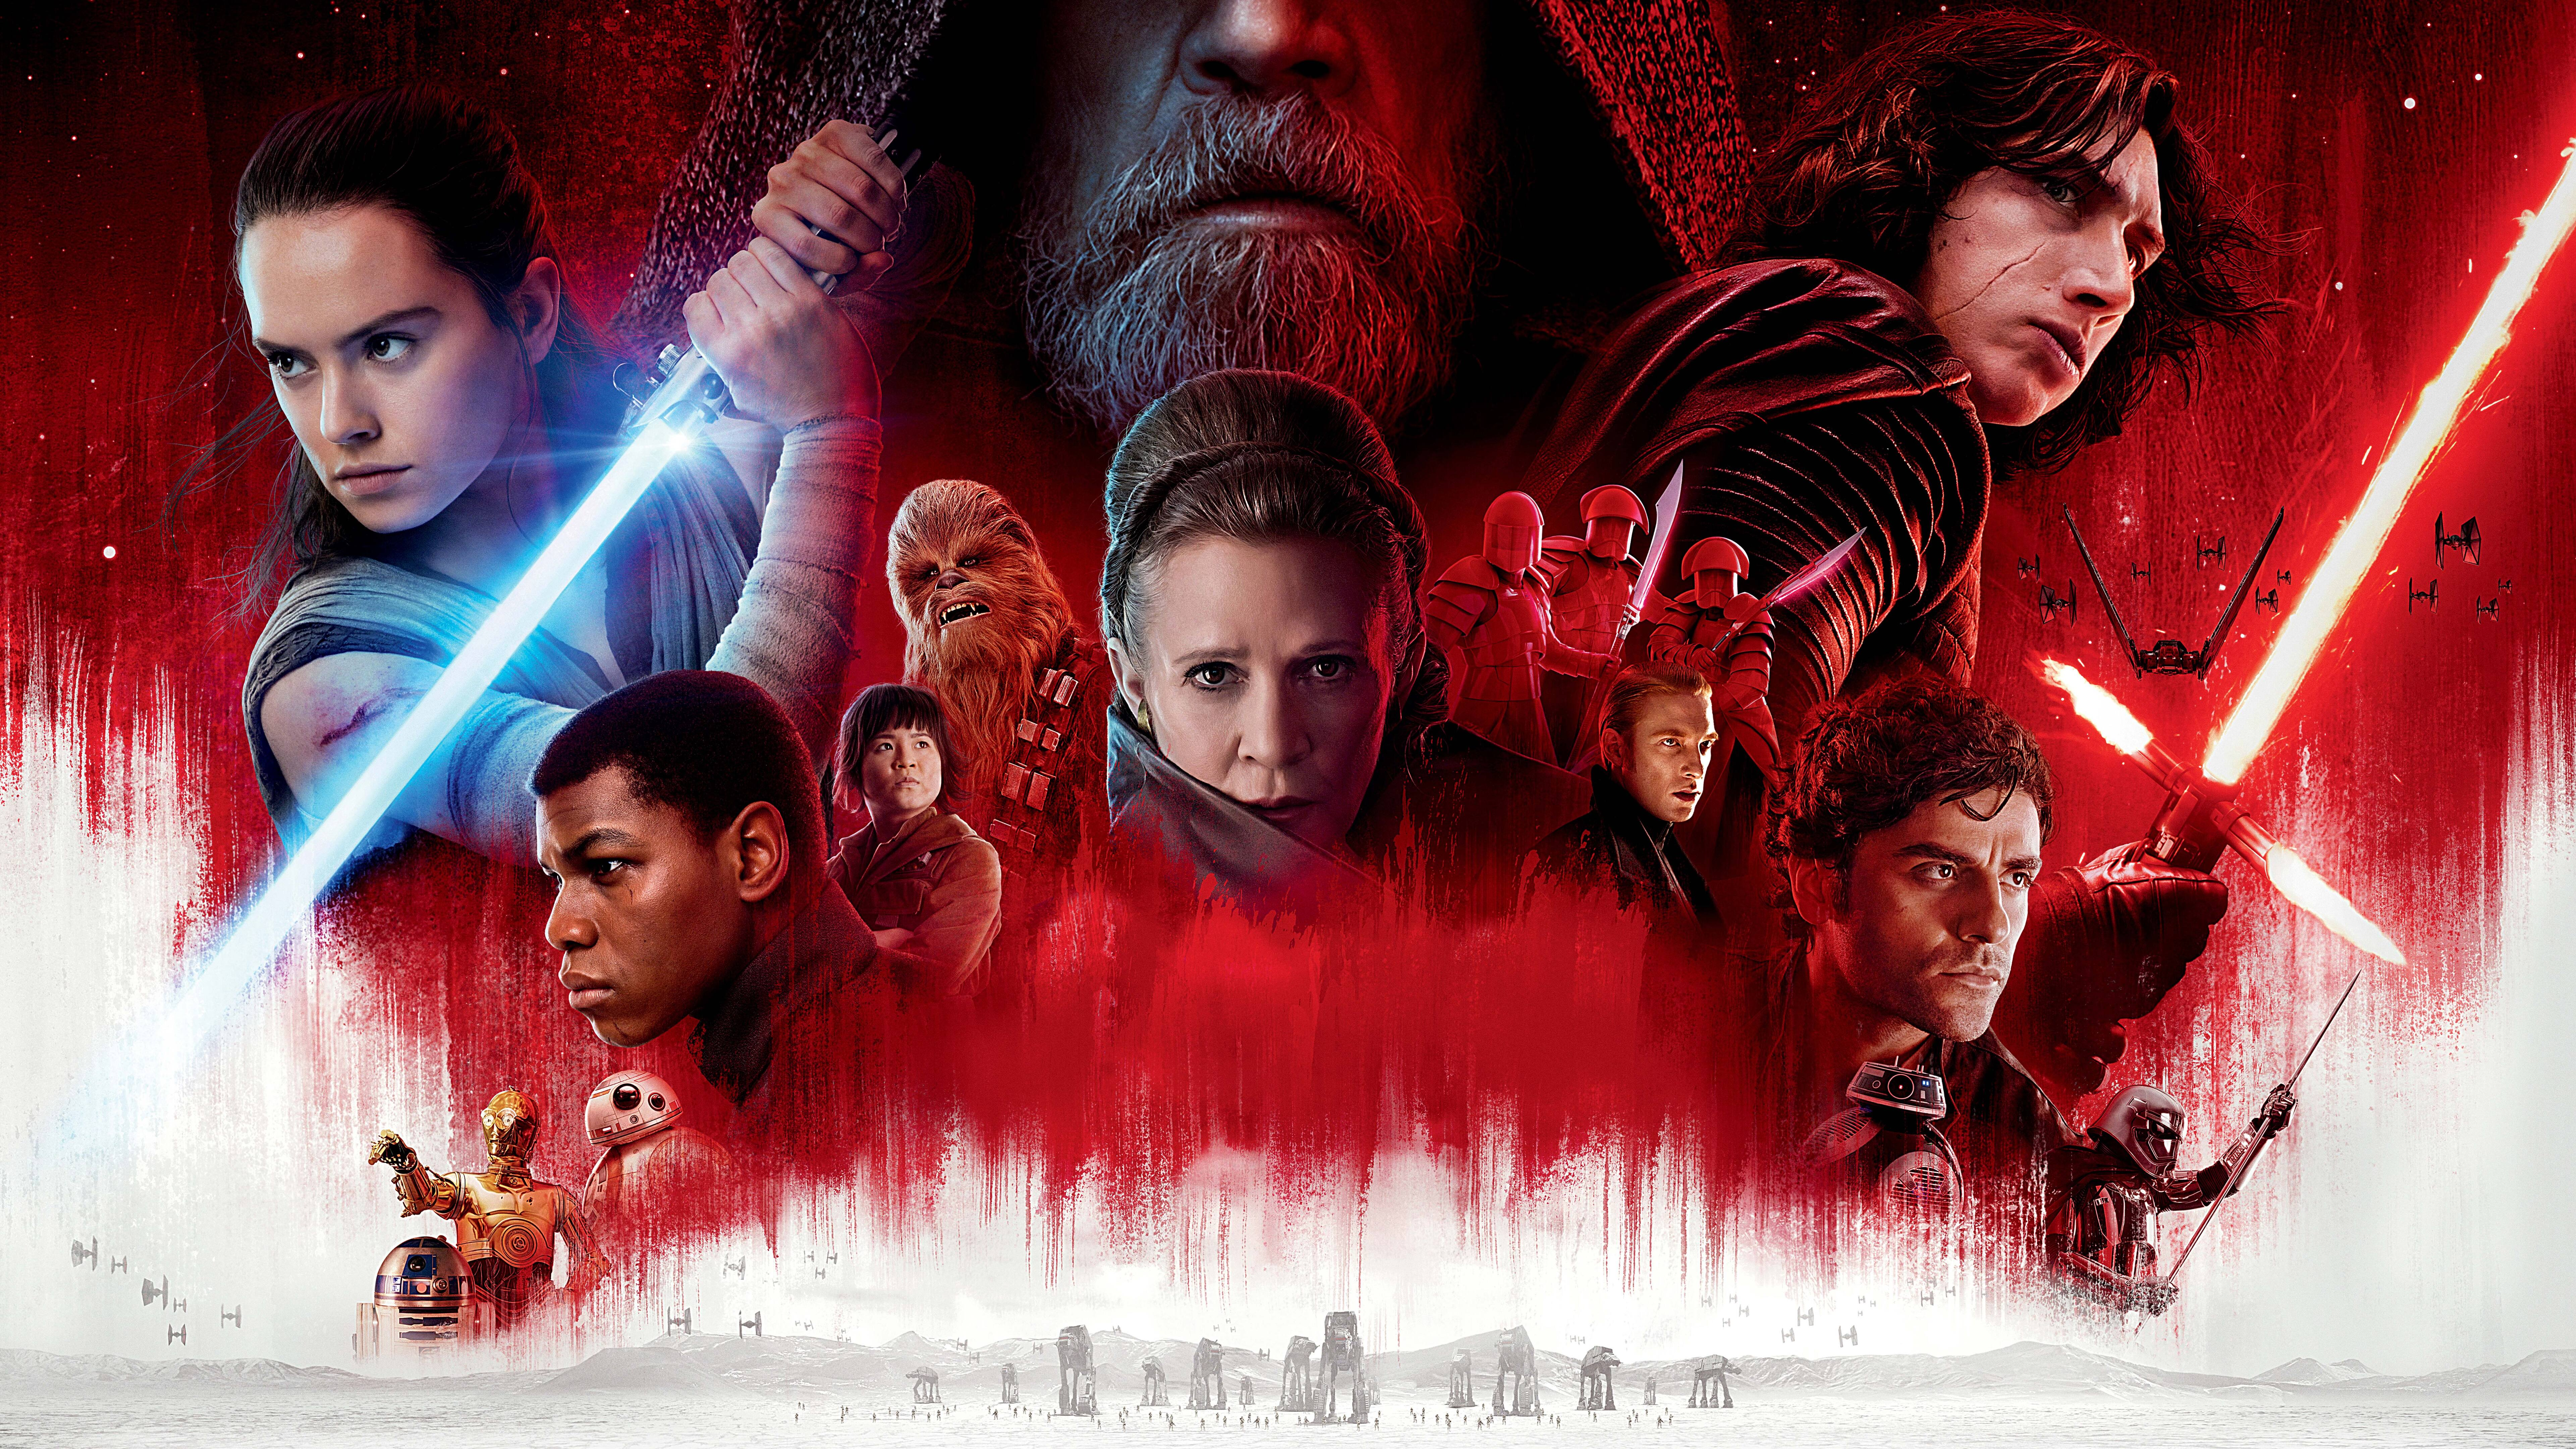 7680x4320 10k Star Wars The Last Jedi 8k Hd 4k Wallpapers Images Backgrounds Photos And Pictures